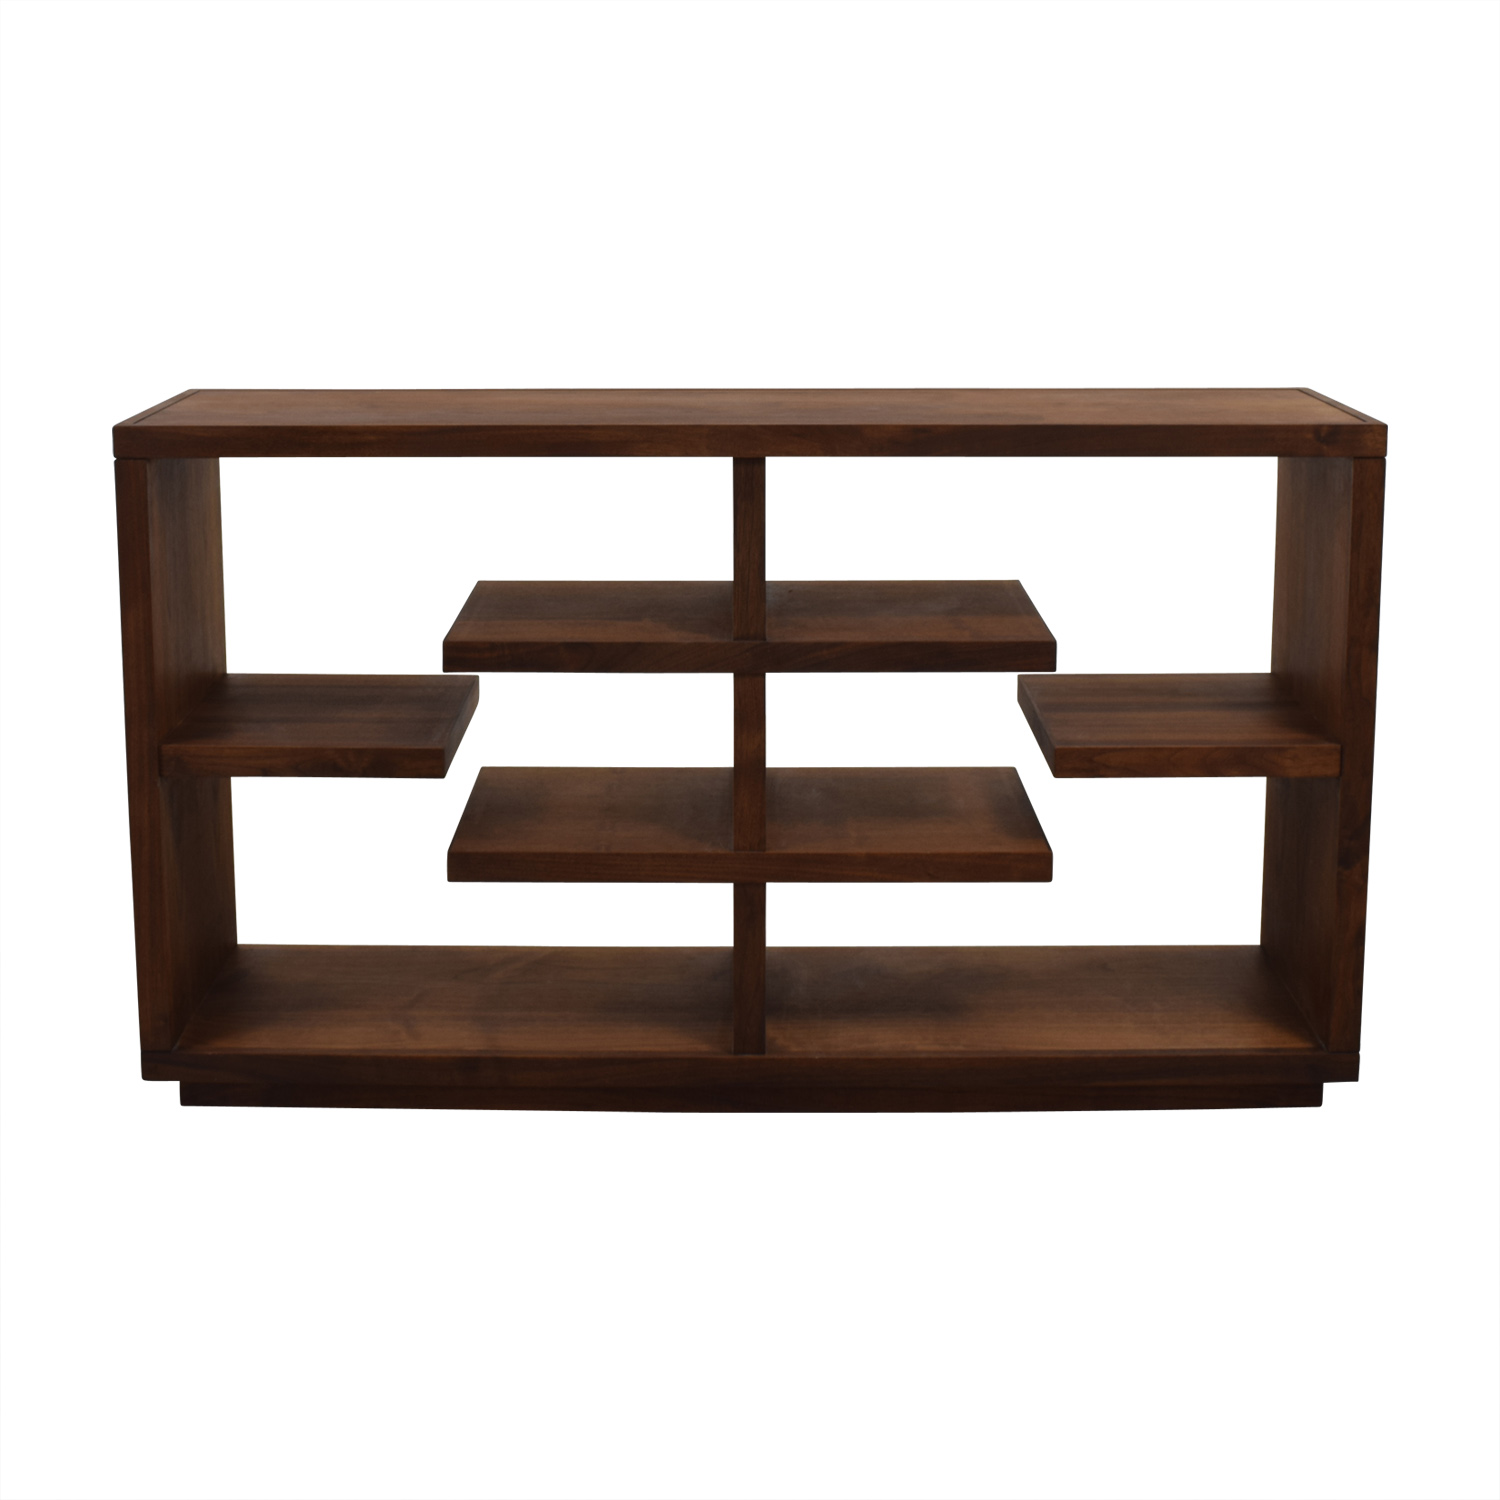 Crate & Barrel Crate & Barrel Elevate Walnut Bookcase